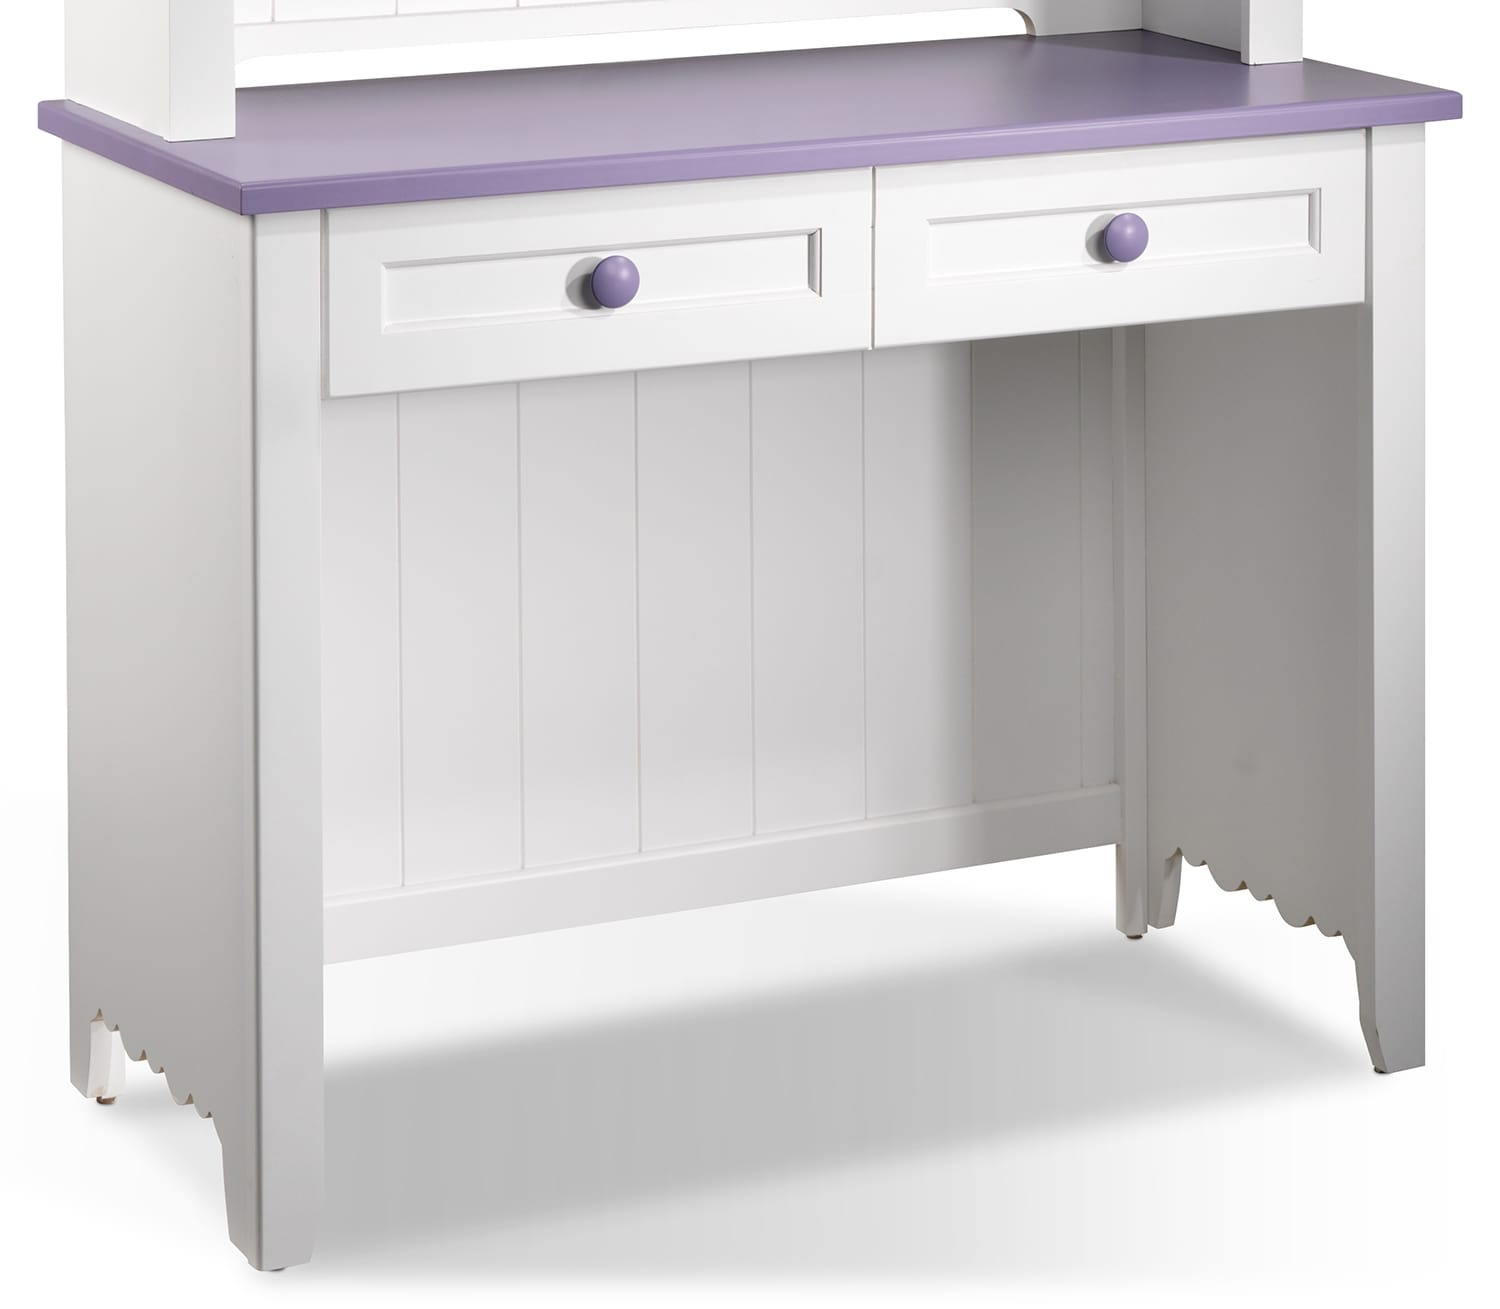 Kids Furniture - Sweetdreams Desk - White and Lavender